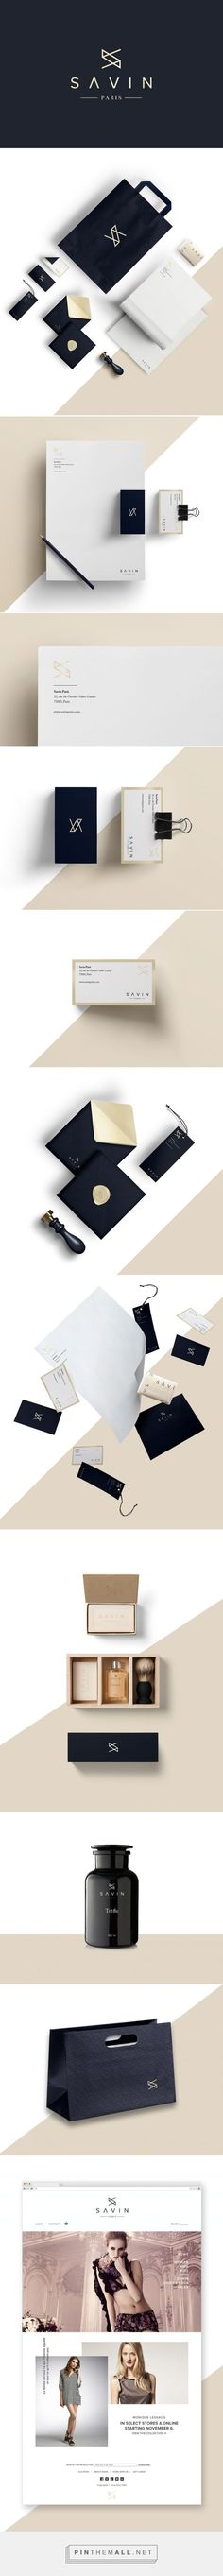 Savin Paris - fashion apparel on Behance - branding stationary corporate identit. Savin Paris - fashion apparel on Behance - branding stationary corporate identity visual design label business card Corporate Design, Brand Identity Design, Graphic Design Branding, Corporate Identity, Packaging Design, Business Card Design, Bag Packaging, Visual Identity, Corporate Business